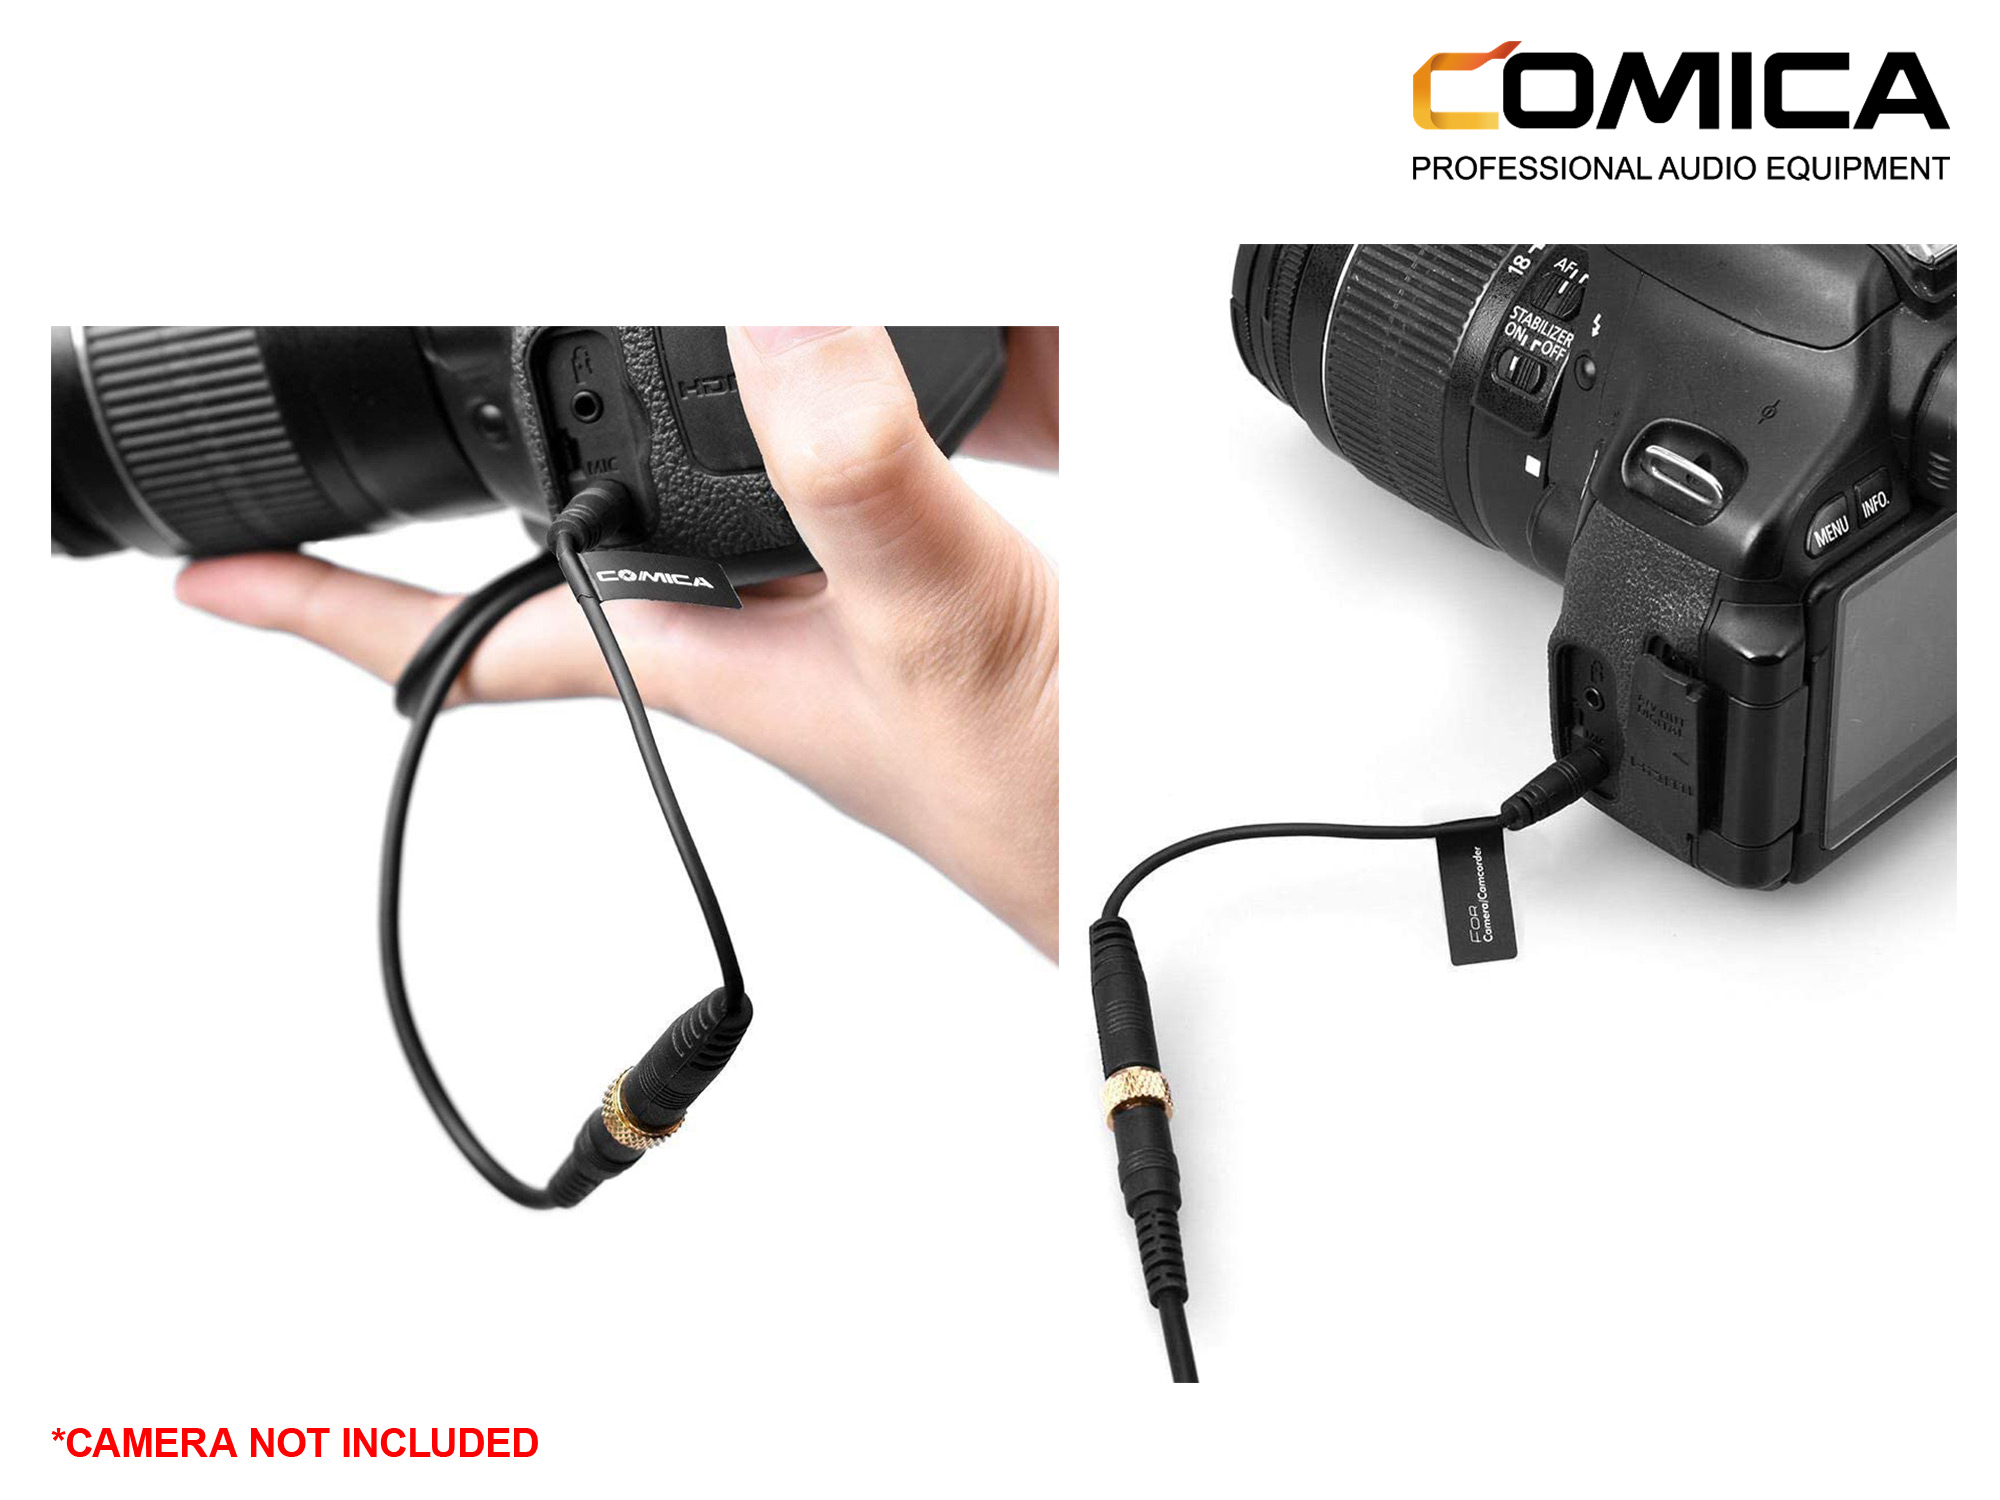 Comica Audio TRRS-TRS Audio Cable Adapter For Camera